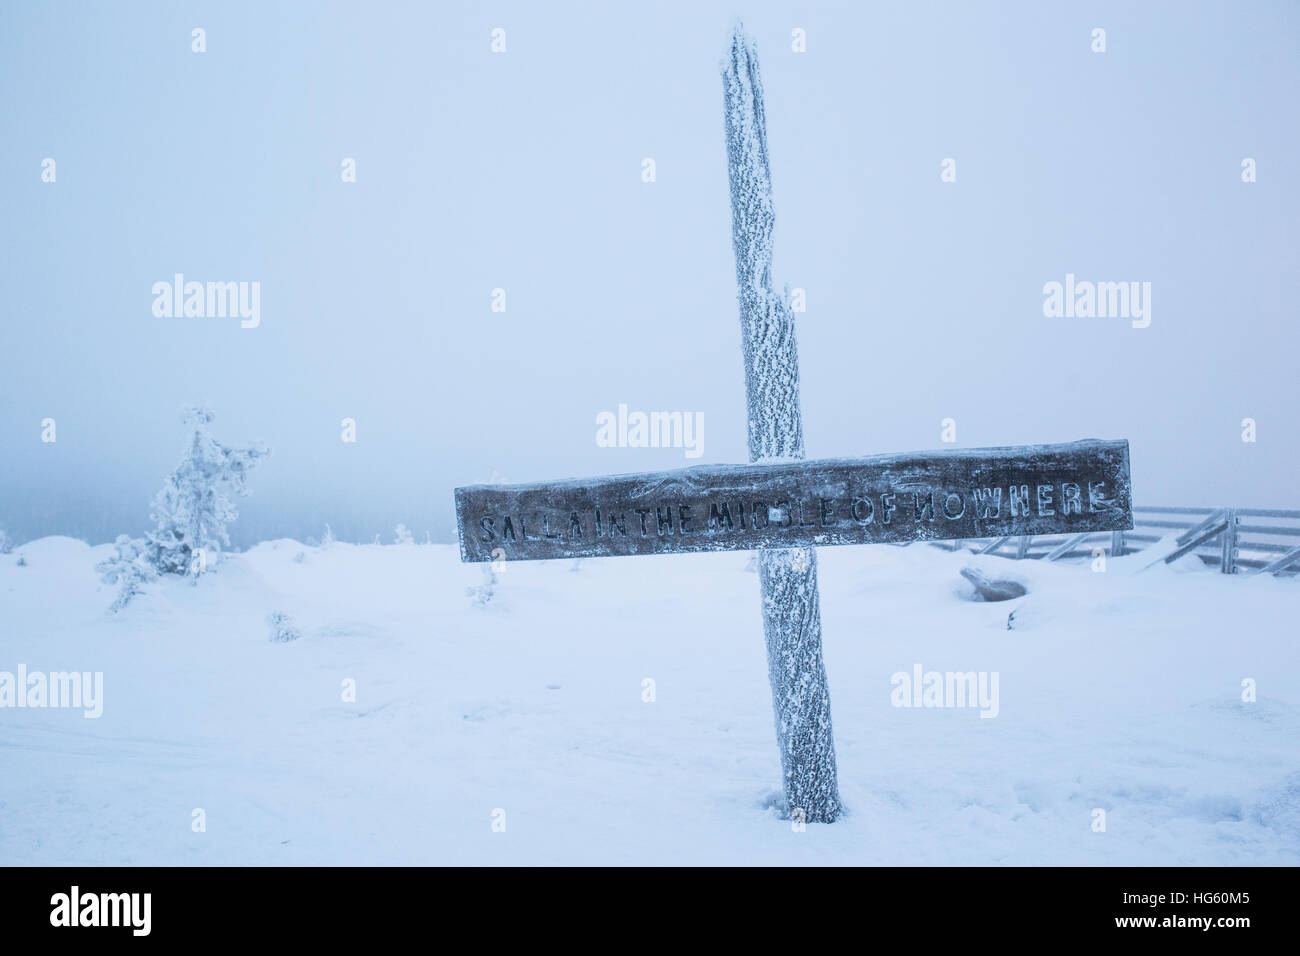 Temperatures hovered around -5 Centigrade in Salla, Finand this morning, Saturday 24th December.. Stock Photo